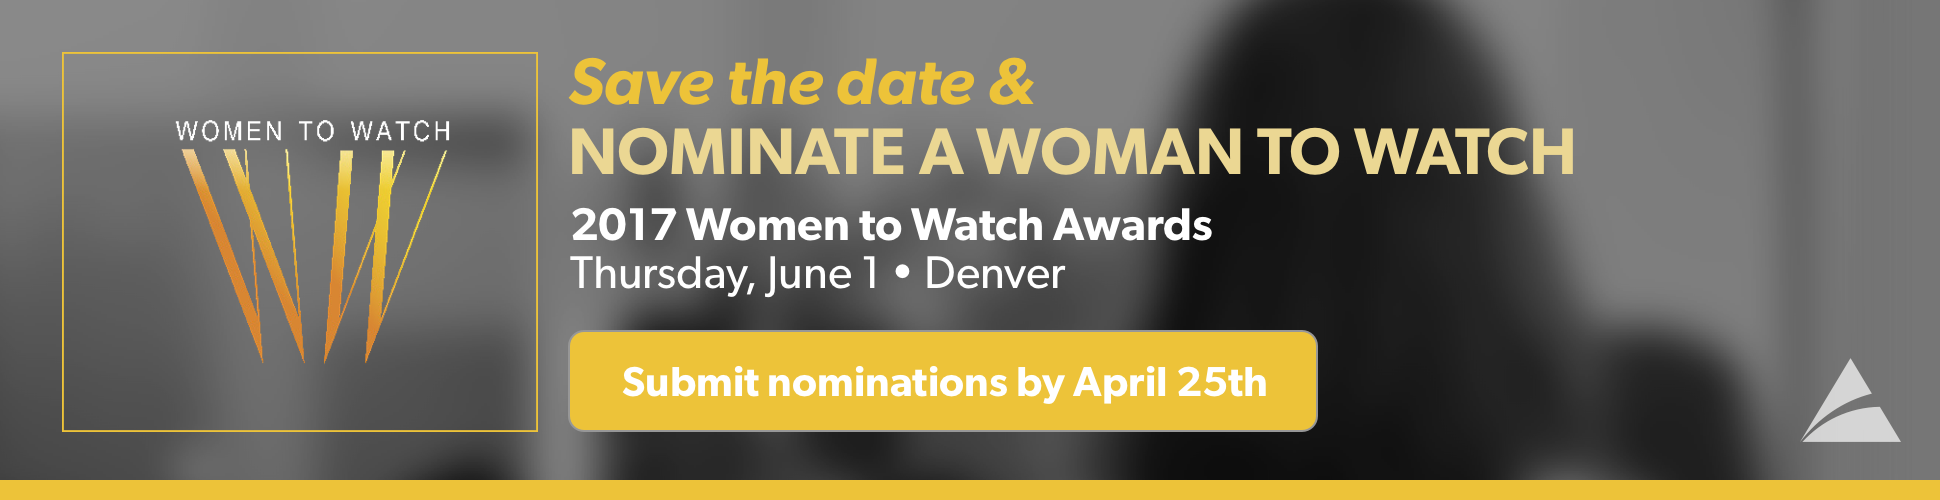 2017 Women to Watch Nominations - Deadline: April 25th